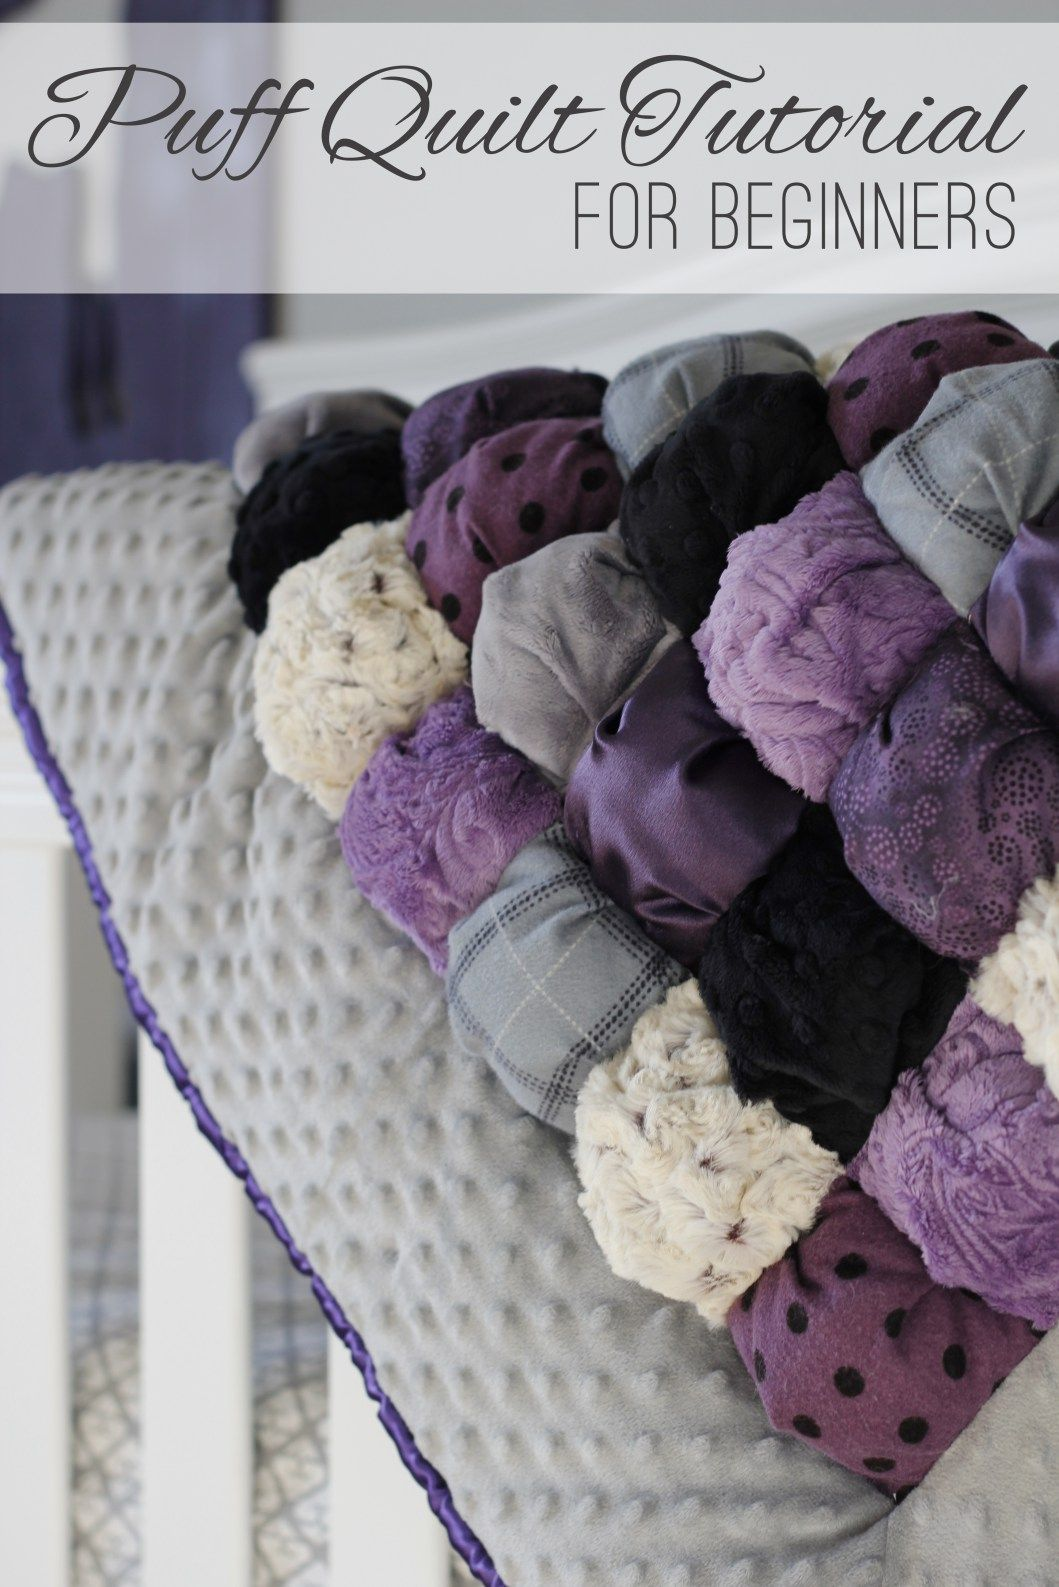 How to Sew an Easy Puff Baby Quilt | Biscuit quilt, Puff quilt and ... : baby puff quilt - Adamdwight.com